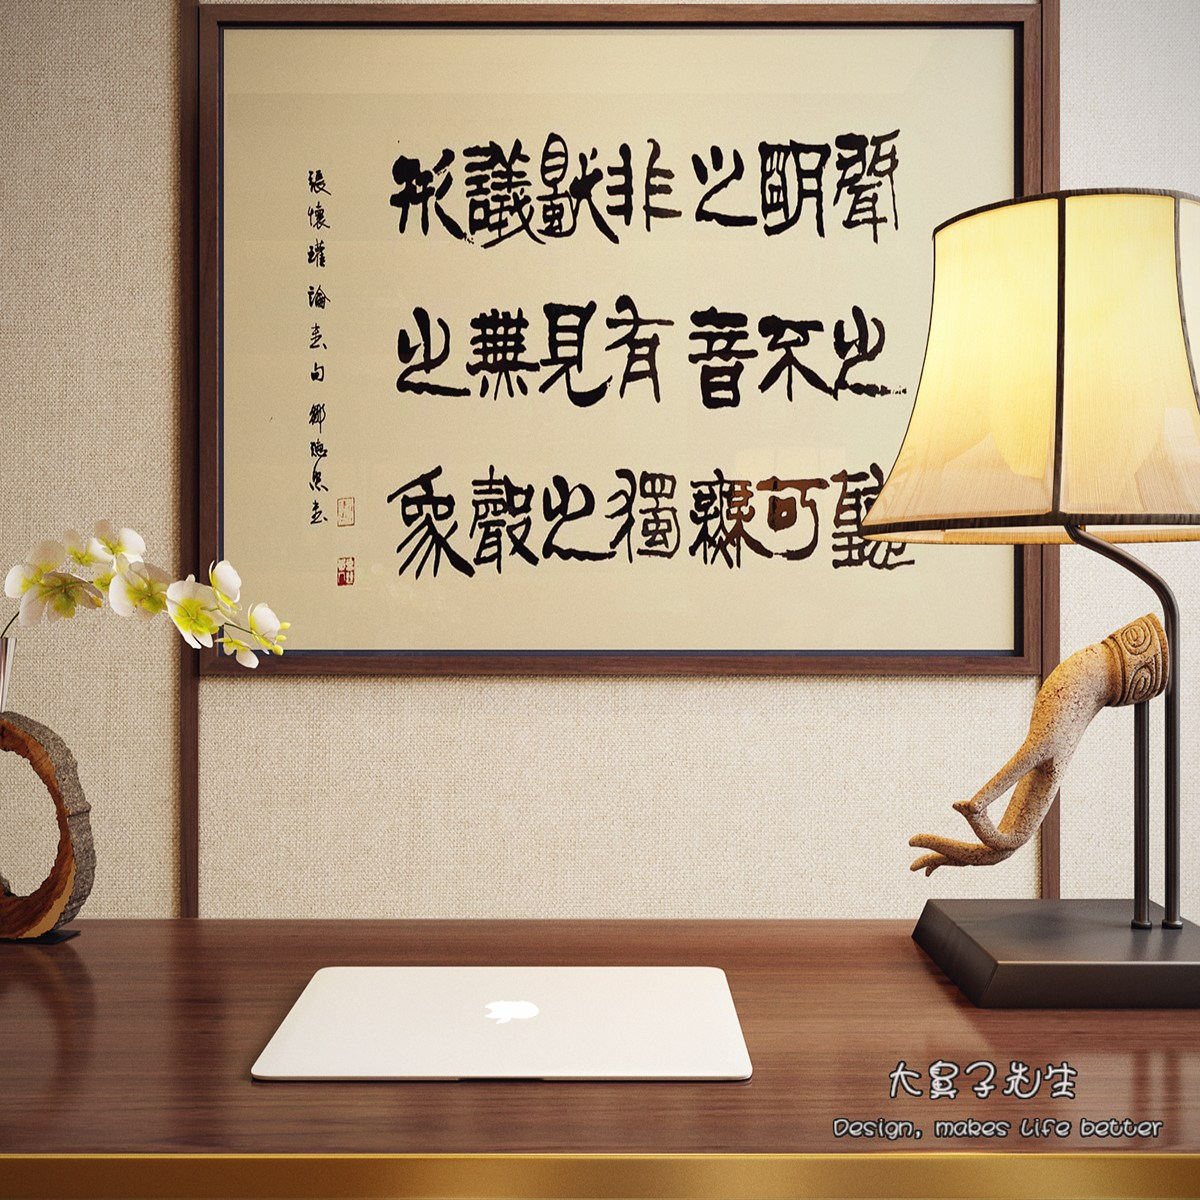 Chinese Home Office Decor - Two modern interiors inspired by traditional chinese decor